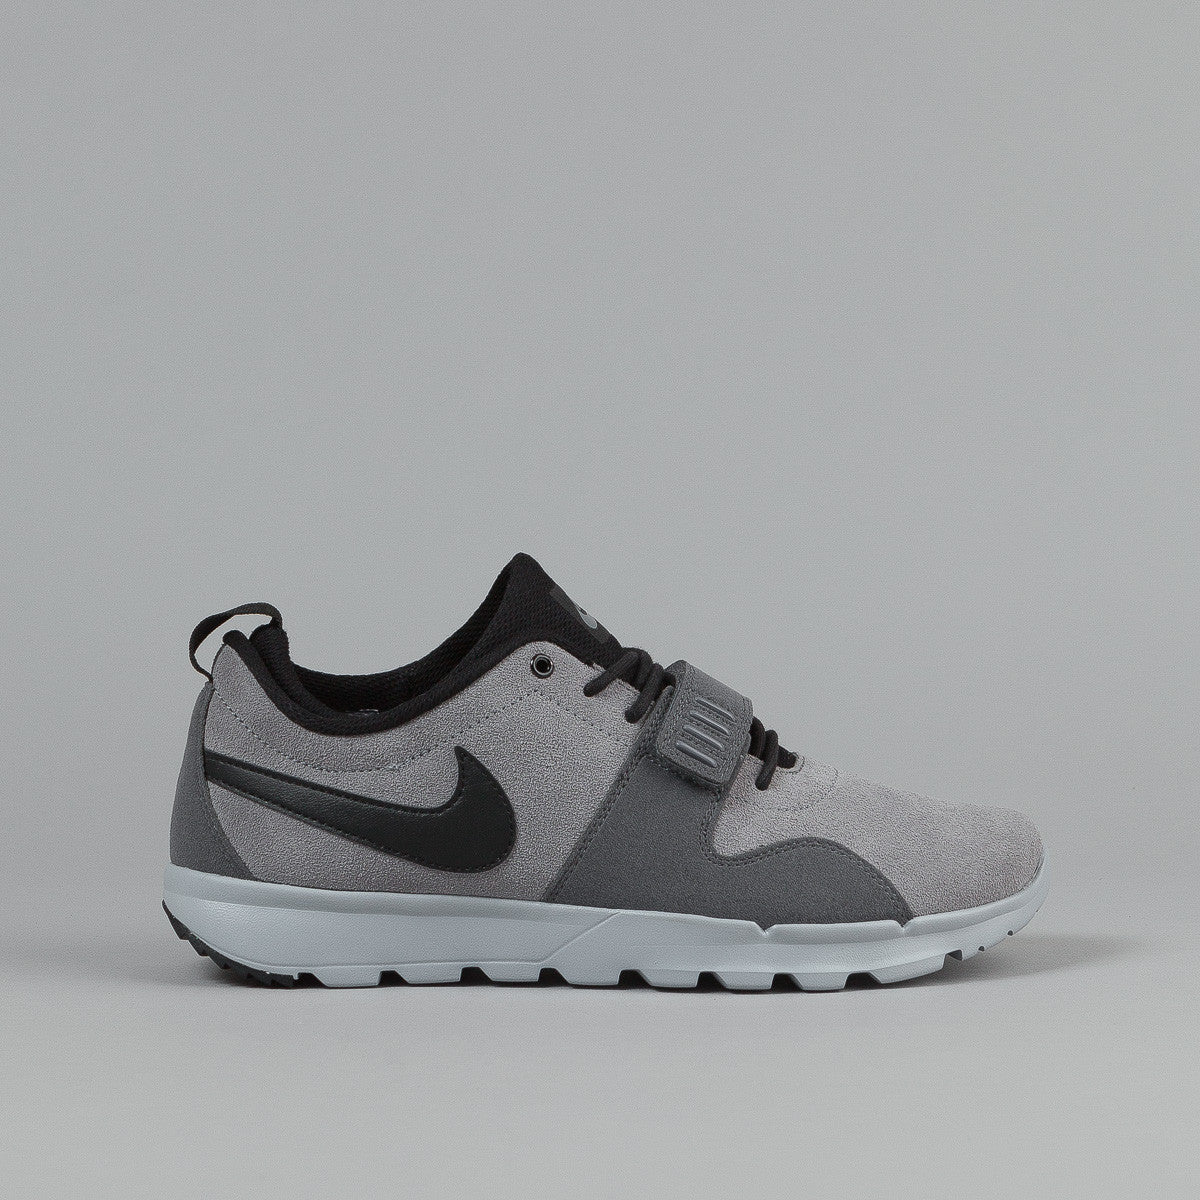 Nike SB Trainerendor L Shoes